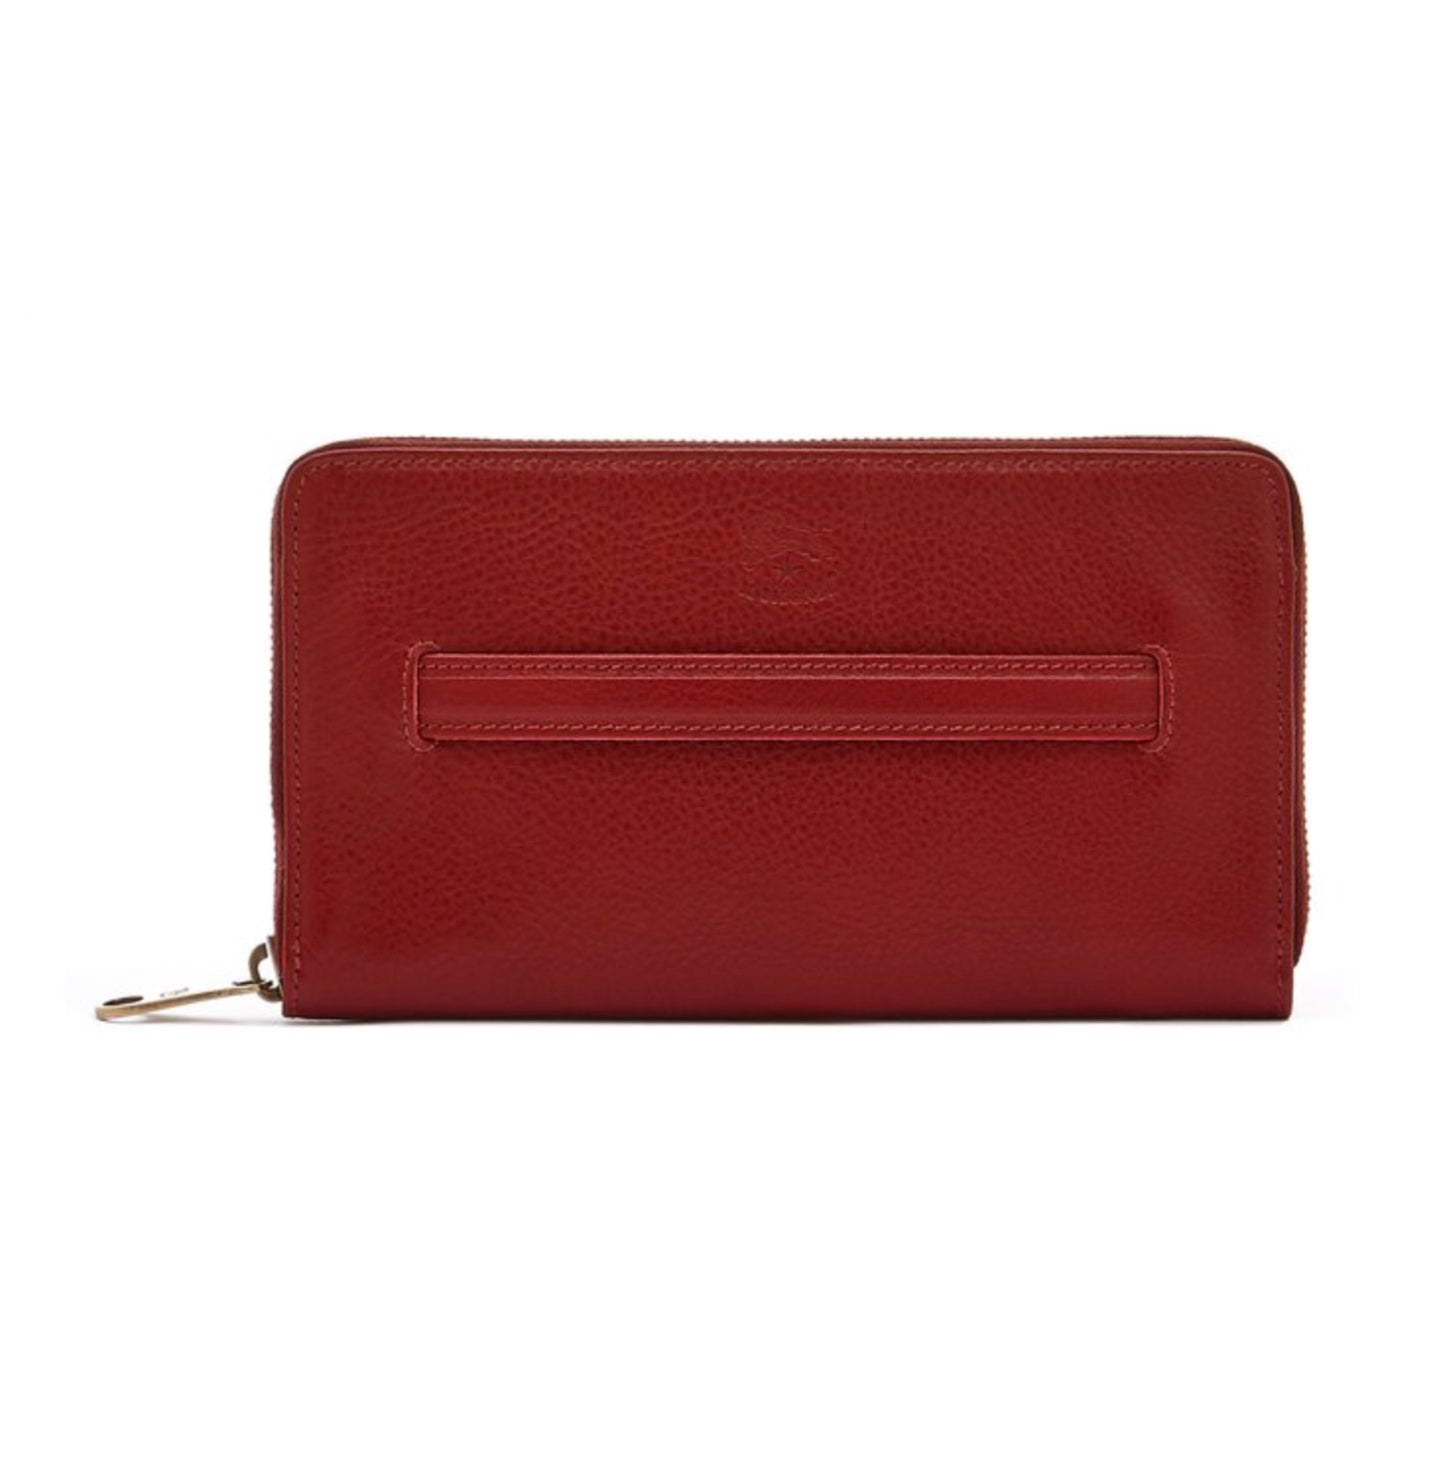 Rosso Zip Around Wallet by Il Bisonte